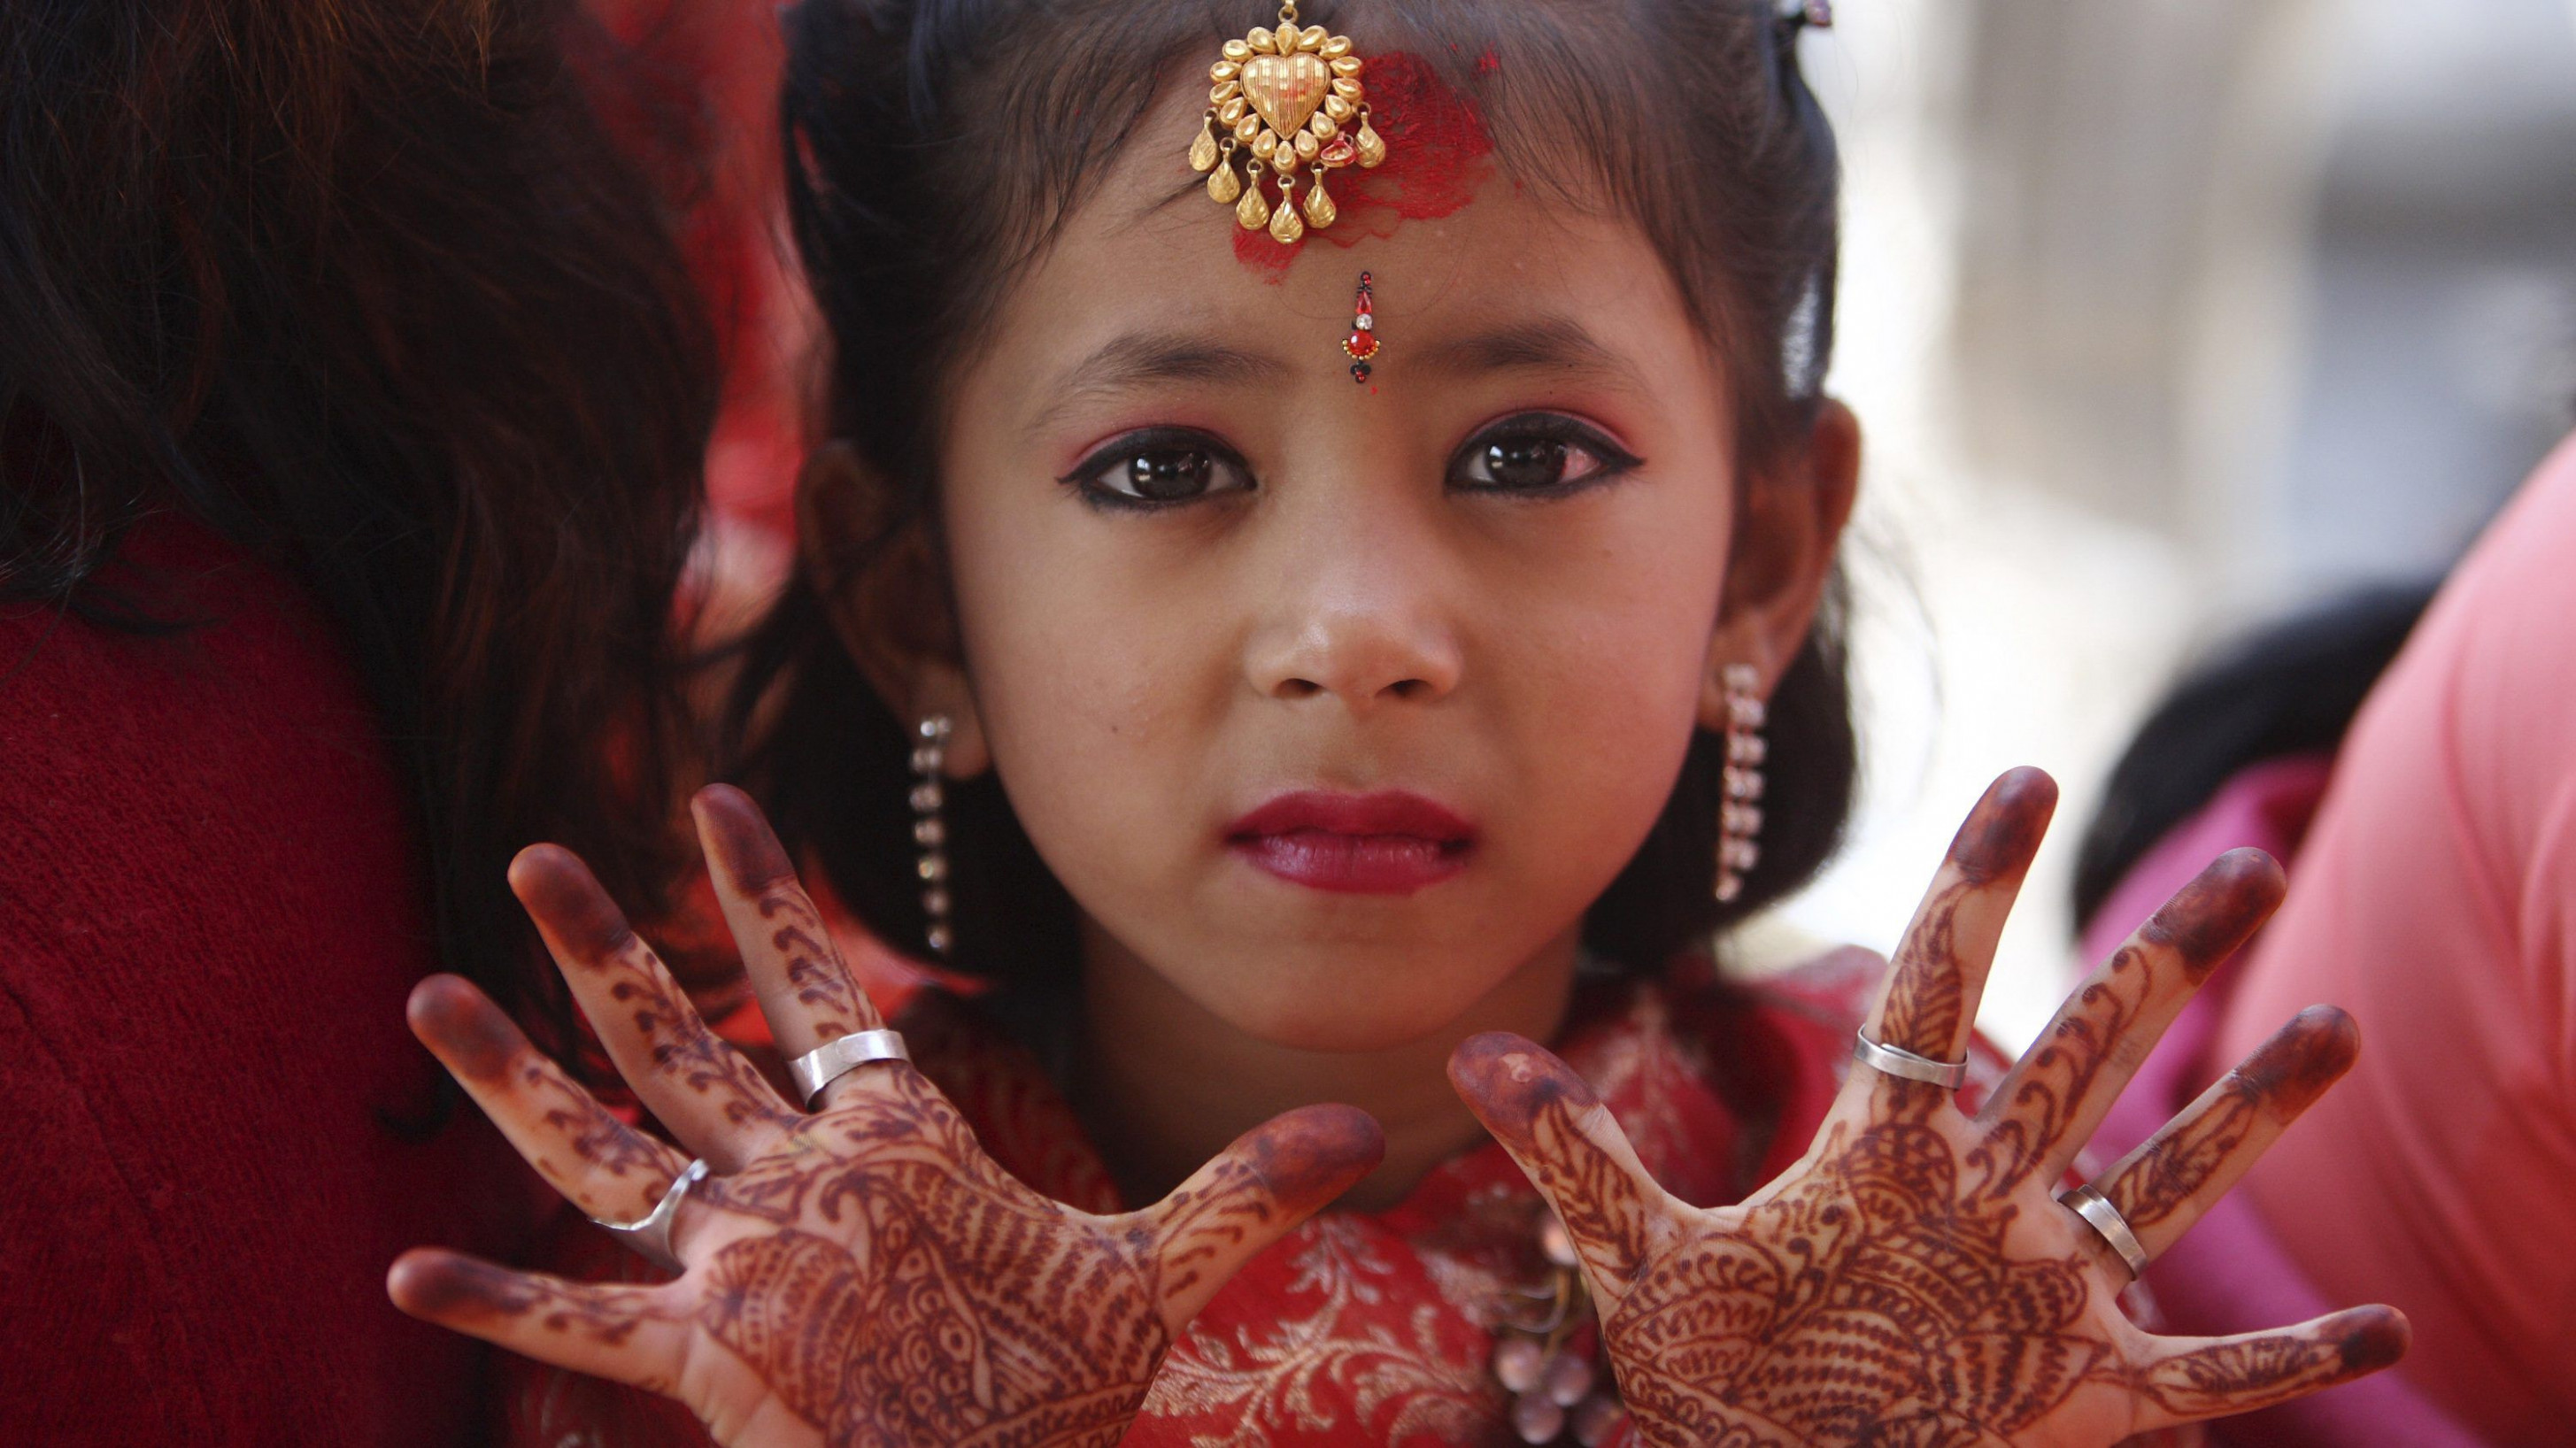 India: Child Bride Numbers on the Rise - Amazons Watch ...